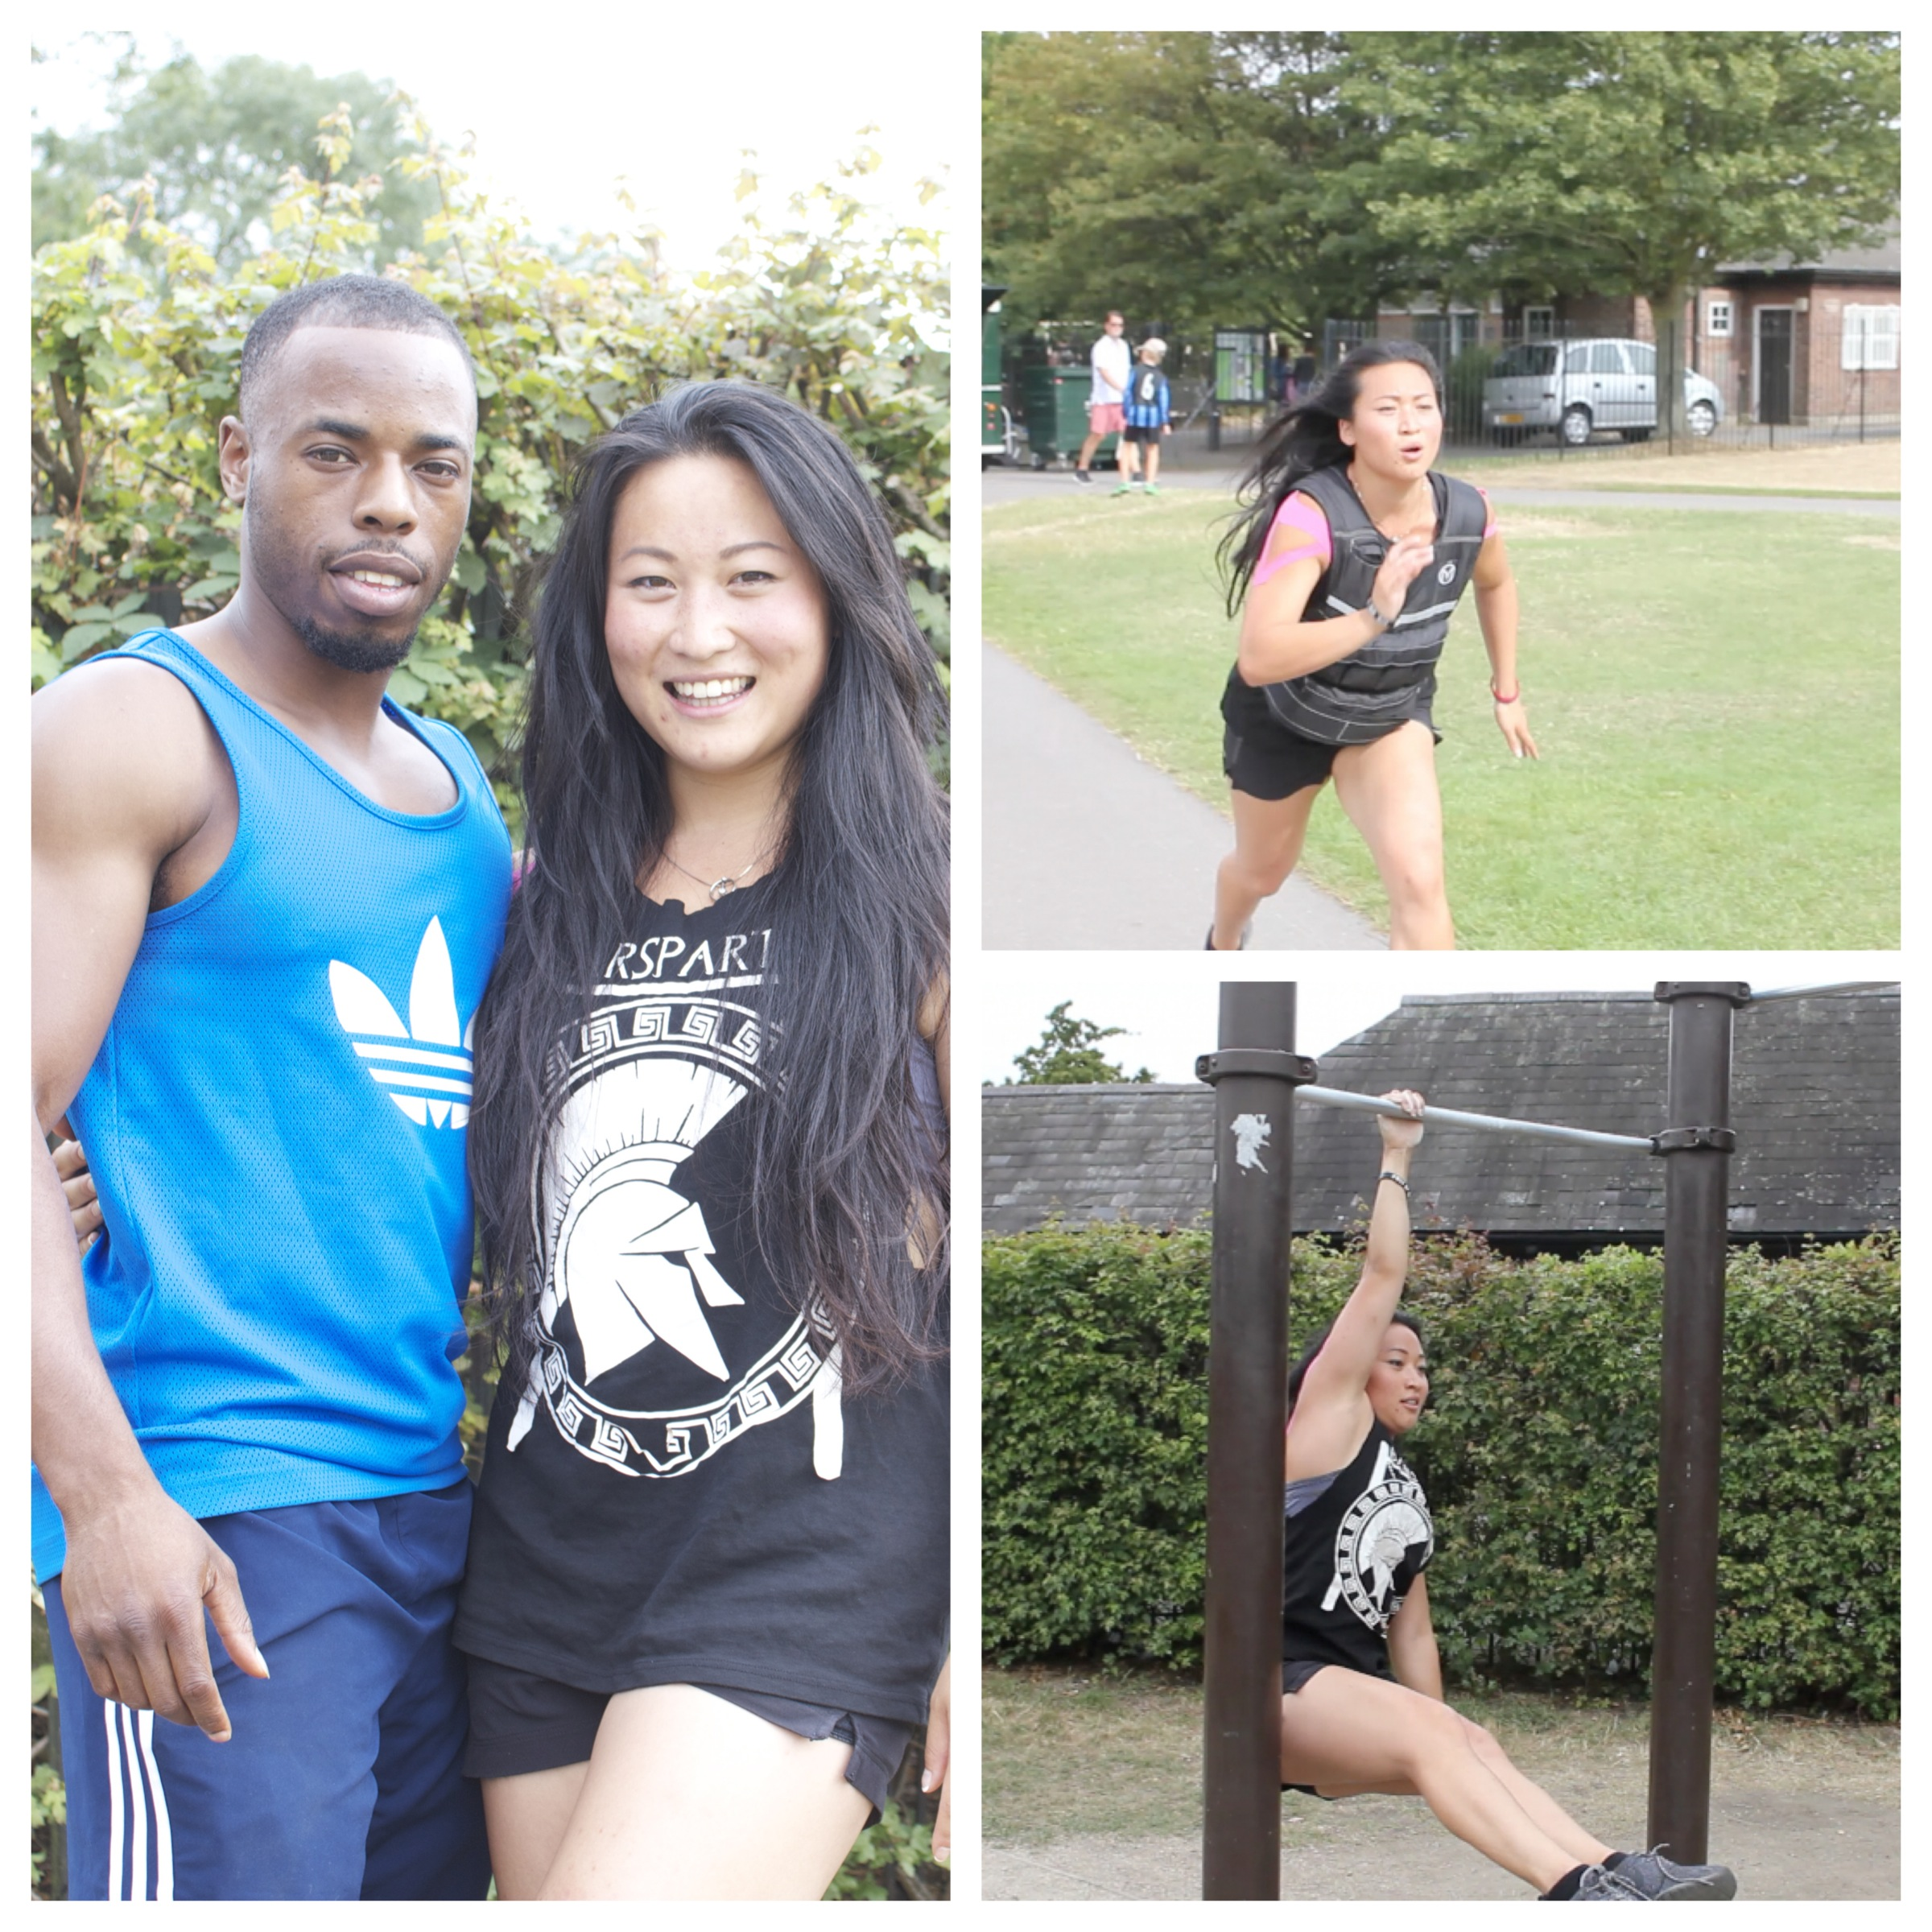 GTN Fitness - Ceo Shortz1 with Lydia Mok